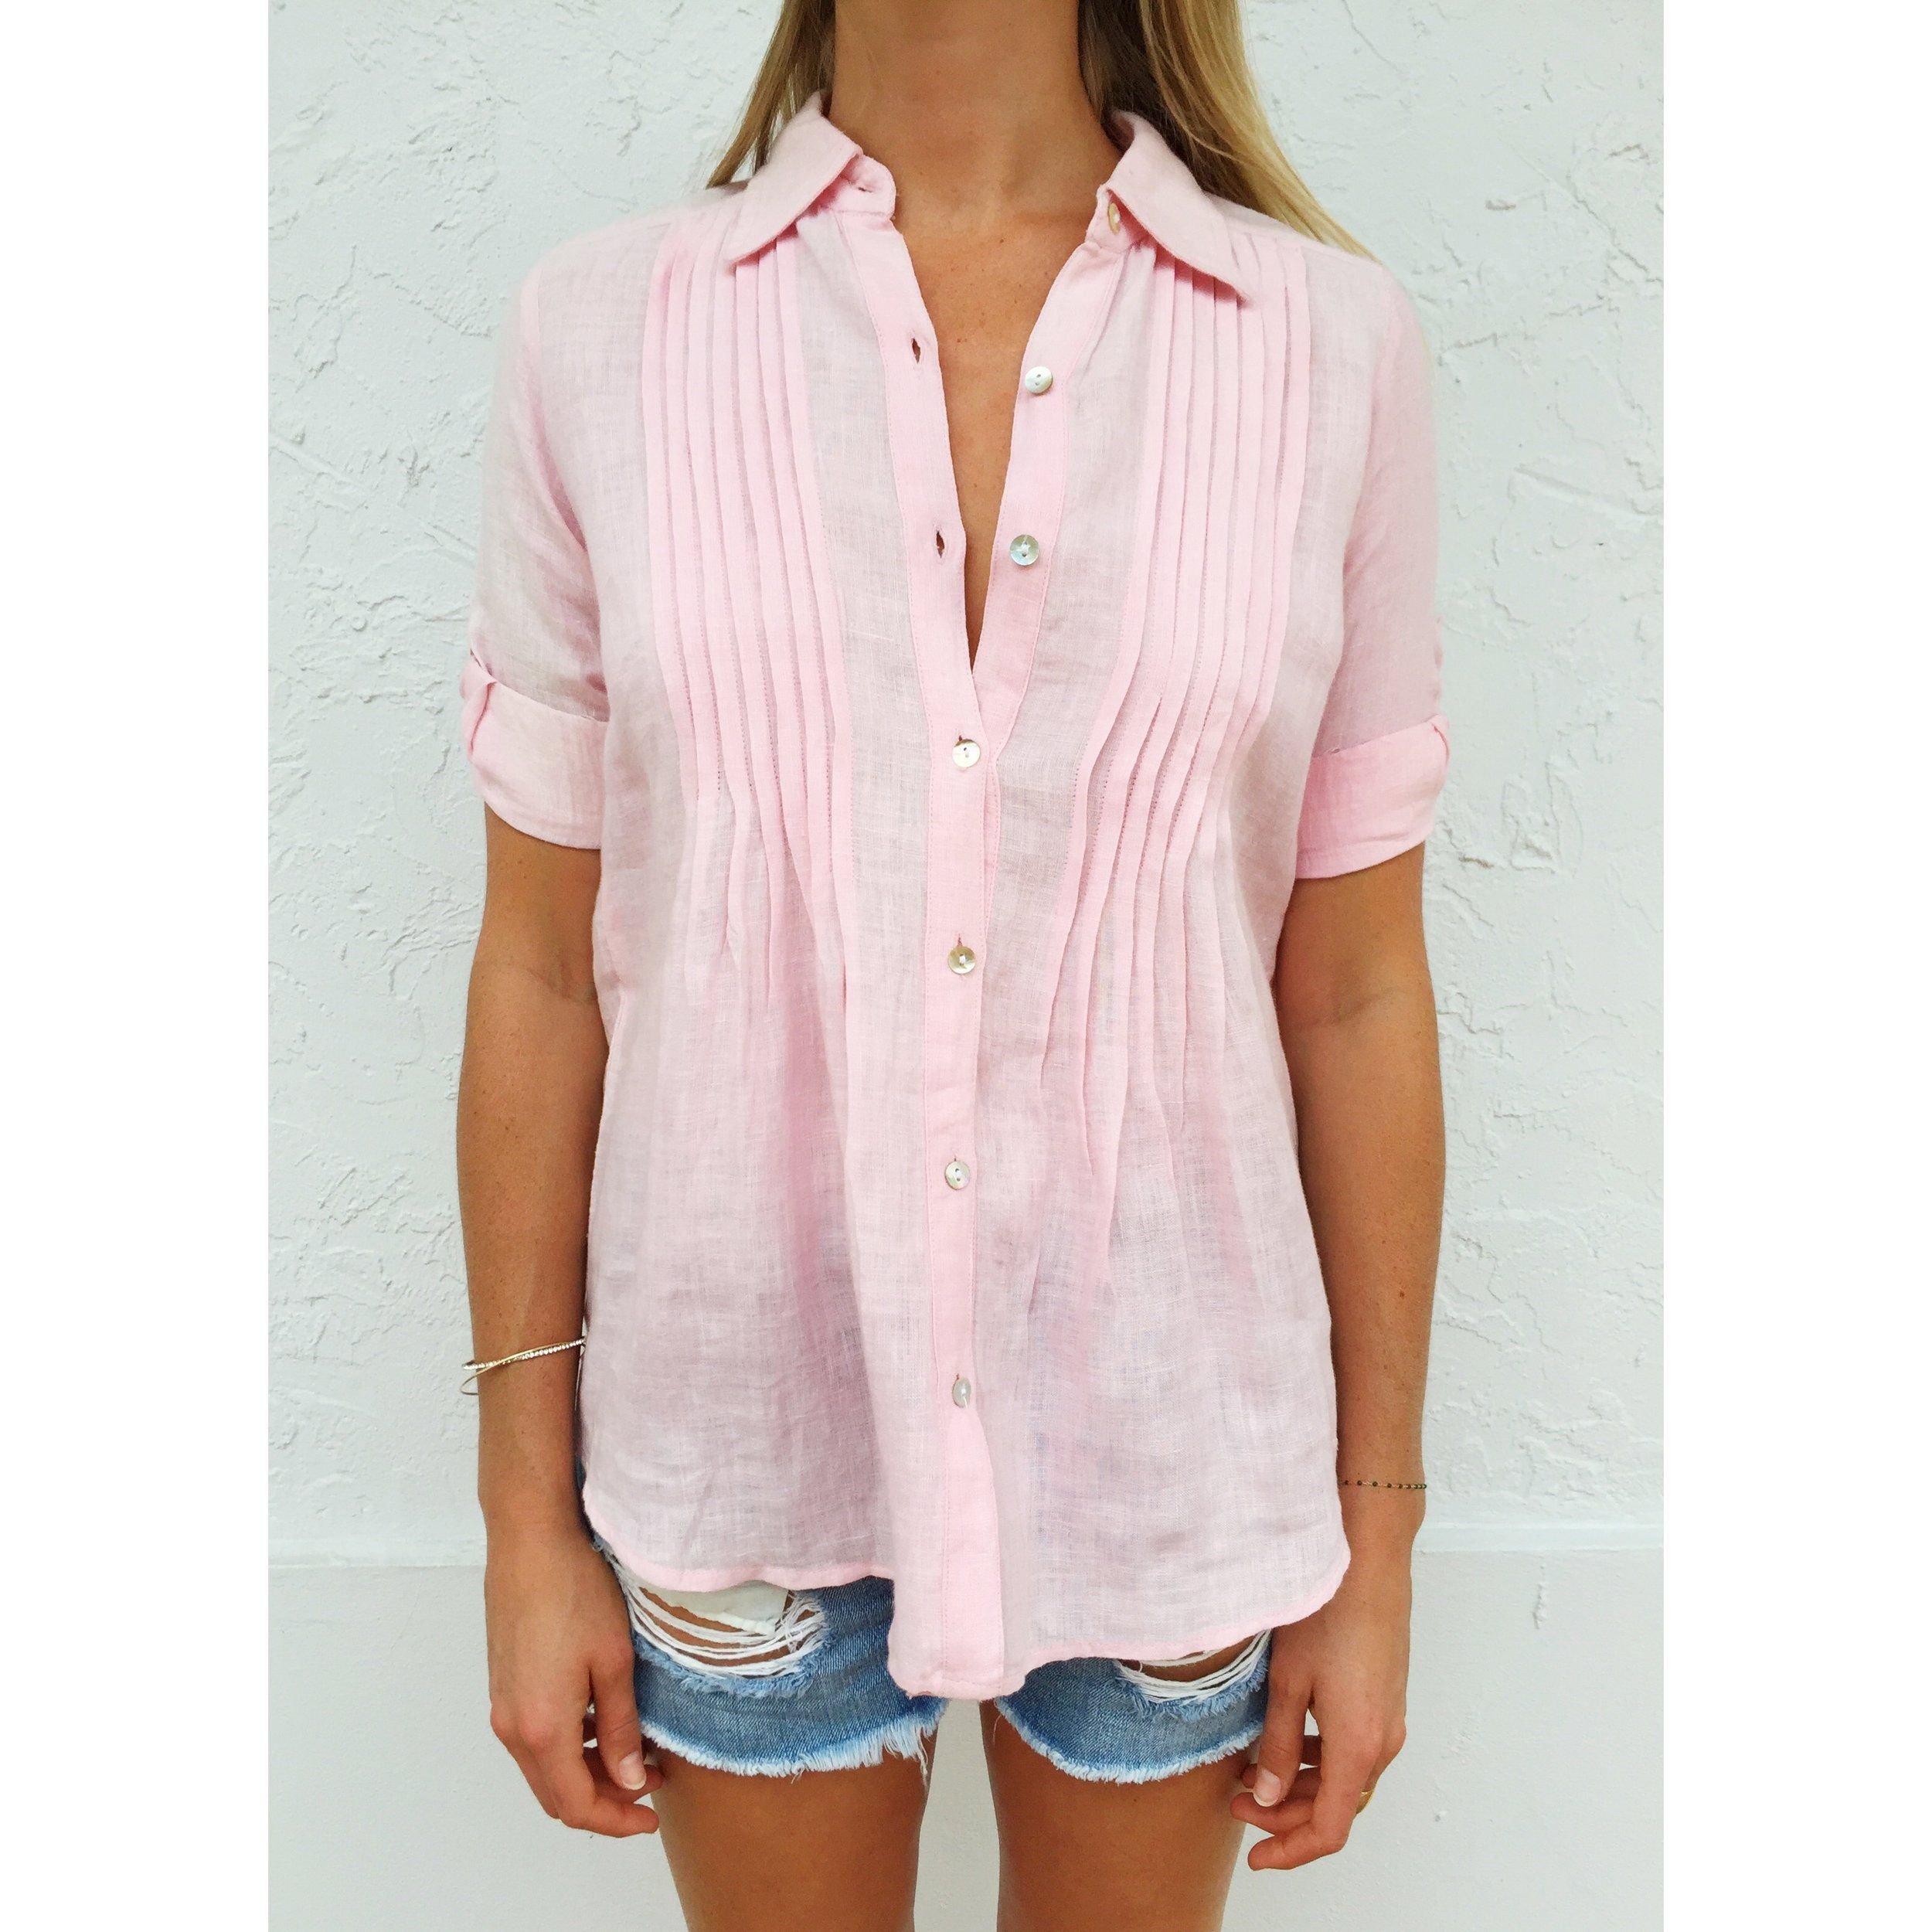 harbour shirt, pink by cj laing